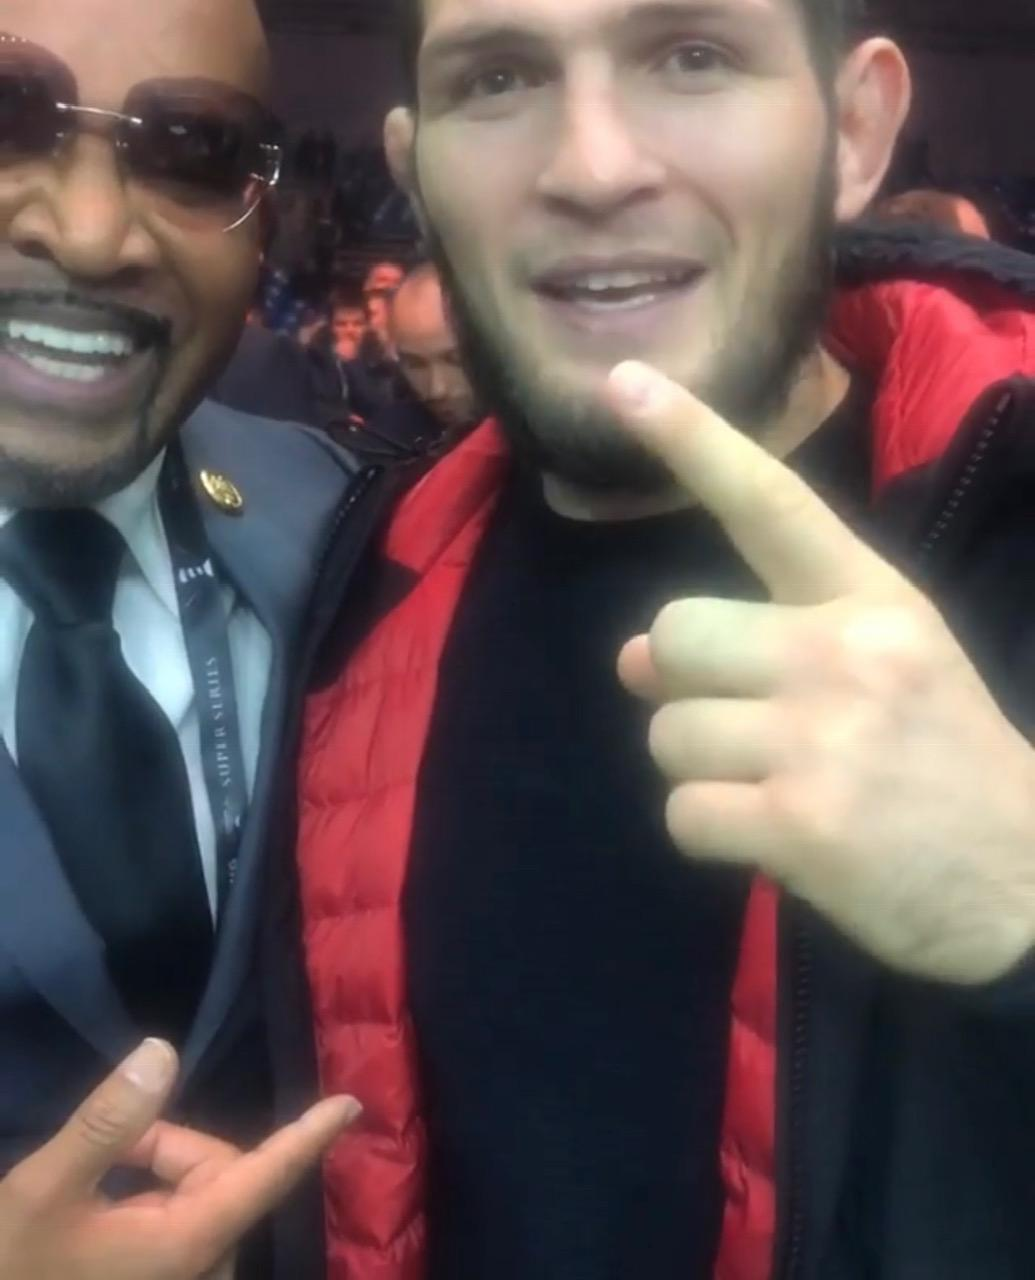 Khabib, 30, was speaking next to Leonard Ellerbe, the CEO of Mayweather Promotions